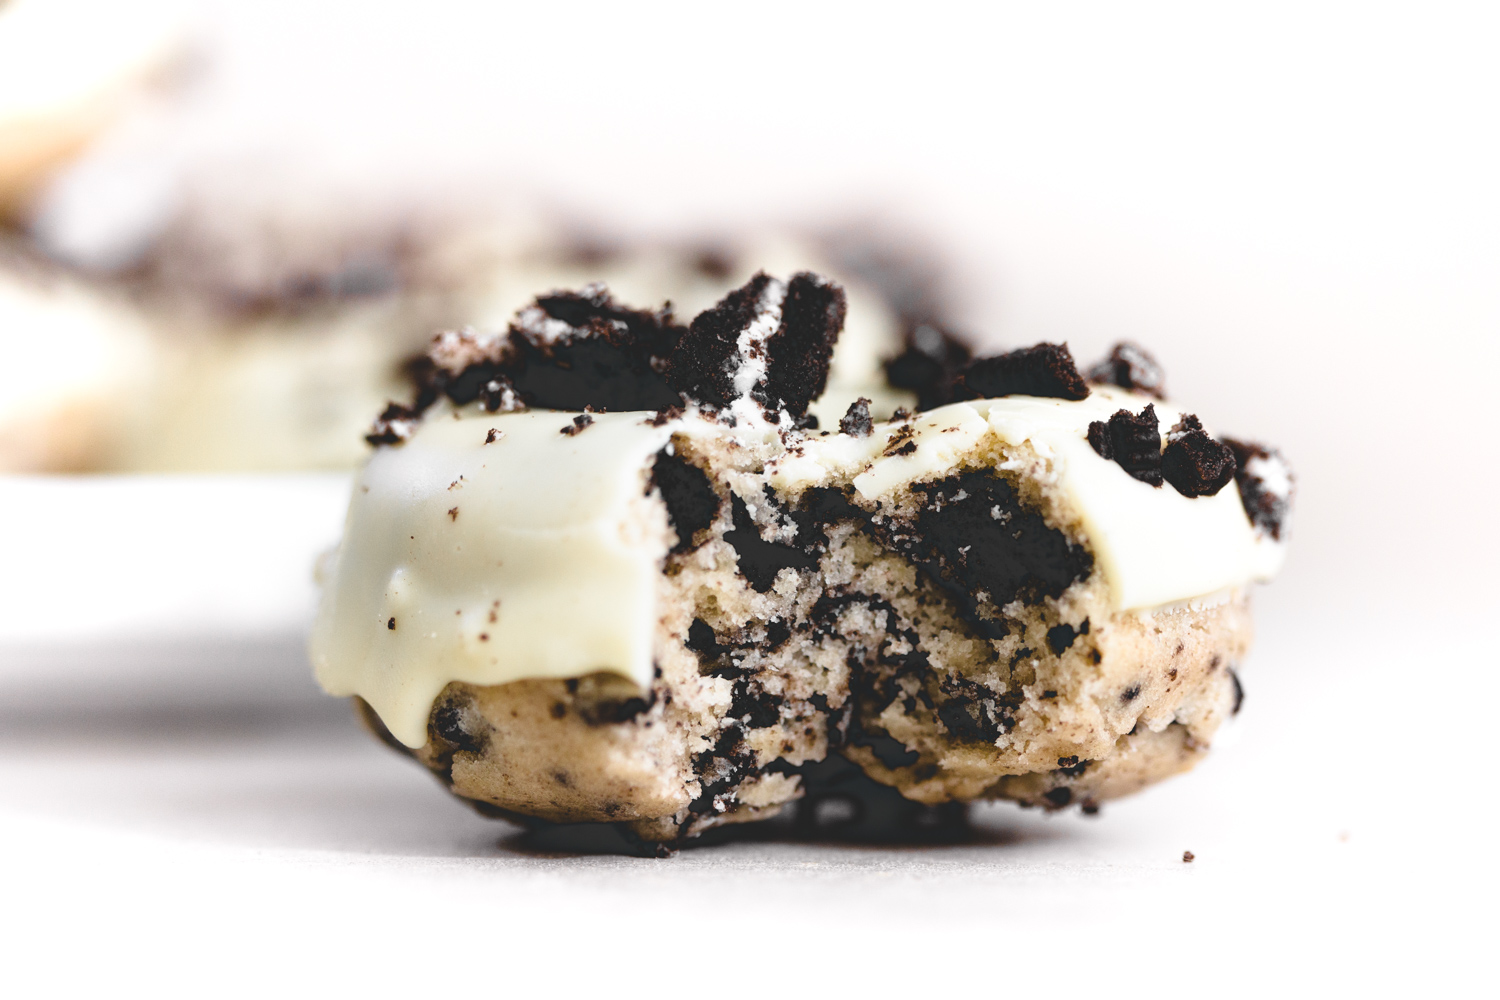 Vegan Oreo Donuts made in under 1 hour. The perfect Baked Vanilla Donuts studded with chunks of Oreo and iced with Vegan White Chocolate. YUMMEH. #vegan #donut #baking #bakeddonut #oreodonut #whitechocolate #cake #oreo #veganbakeddonuts #easy #dairyfree #eggless #simple